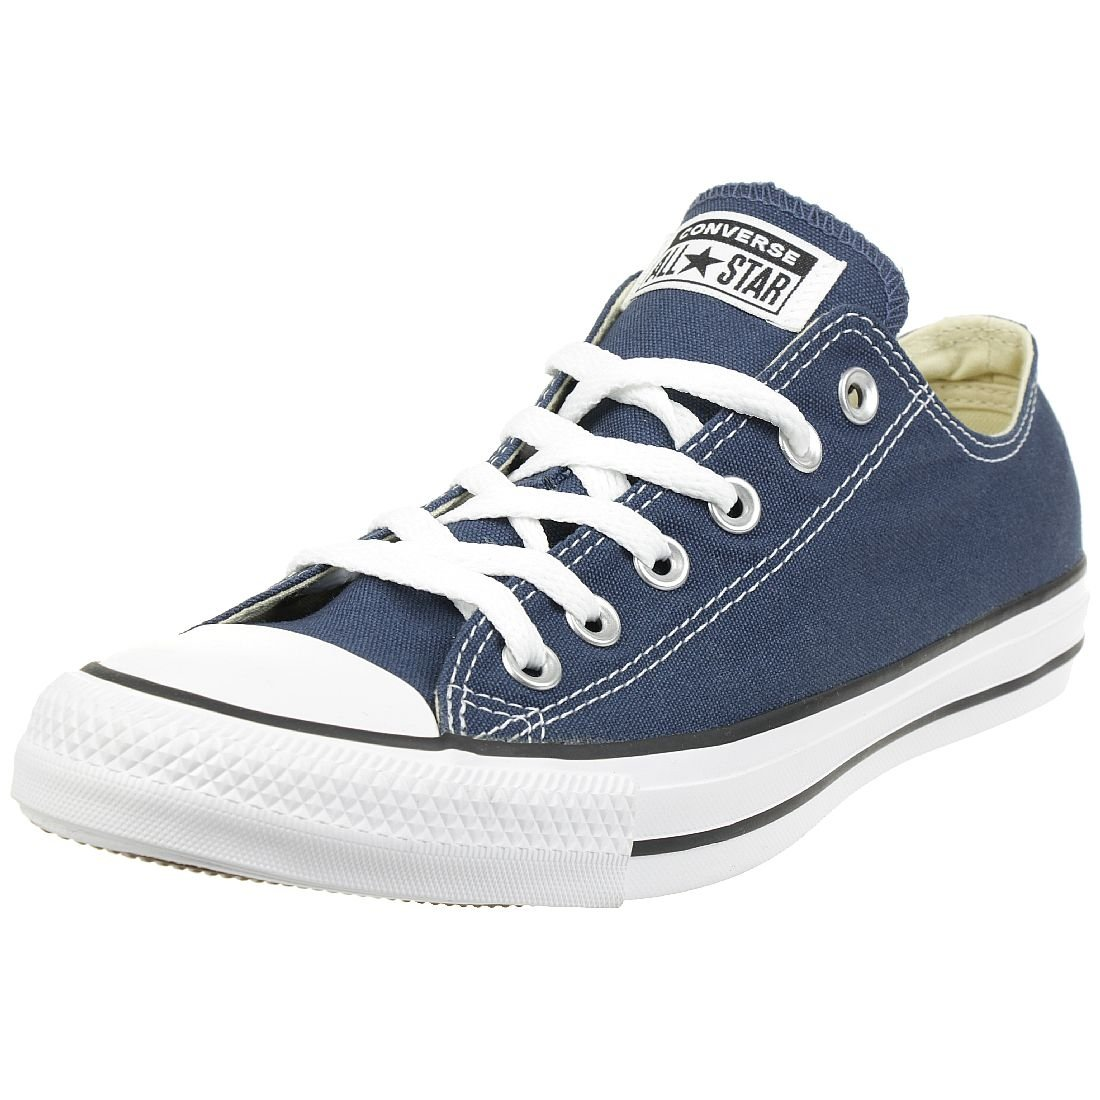 Converse Chuck Taylor All Star Core Ox B07CVLR3W3 5.5 US|Blue